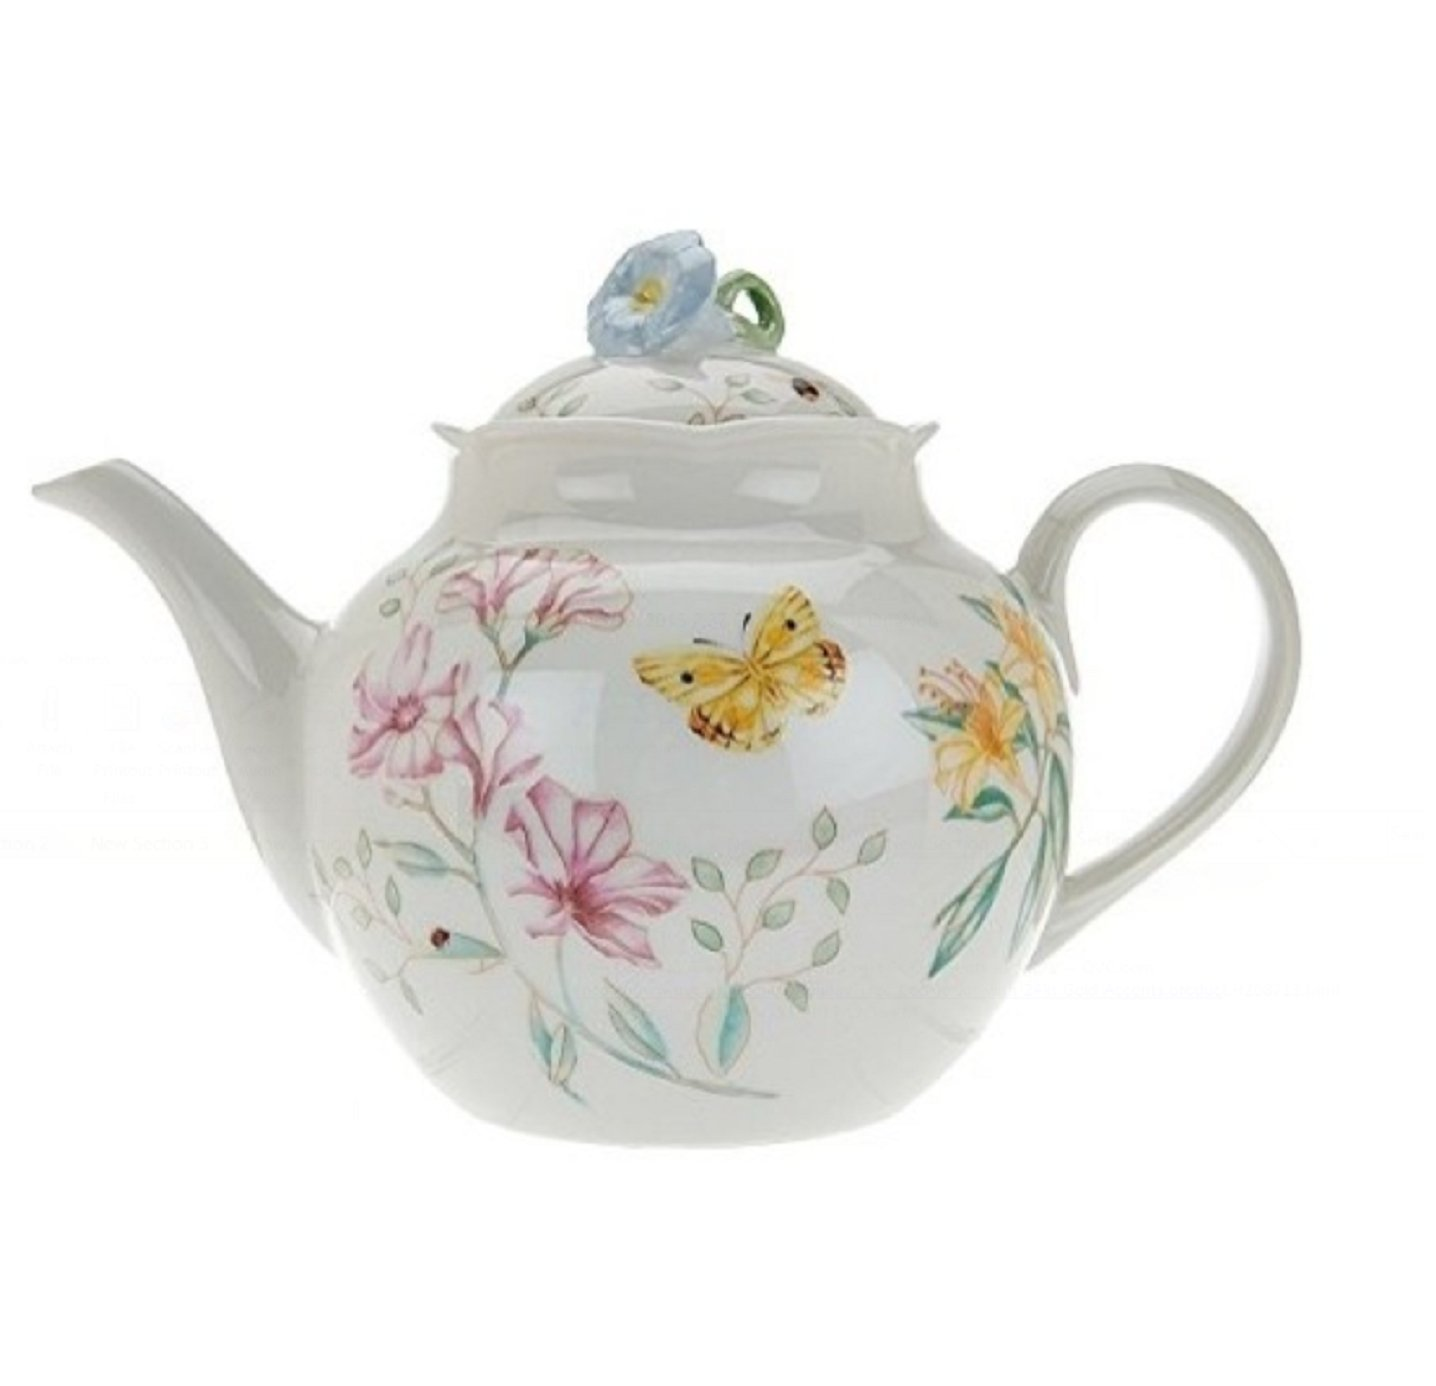 Lenox Butterfly Meadow Limited Edition Teapot with Lid